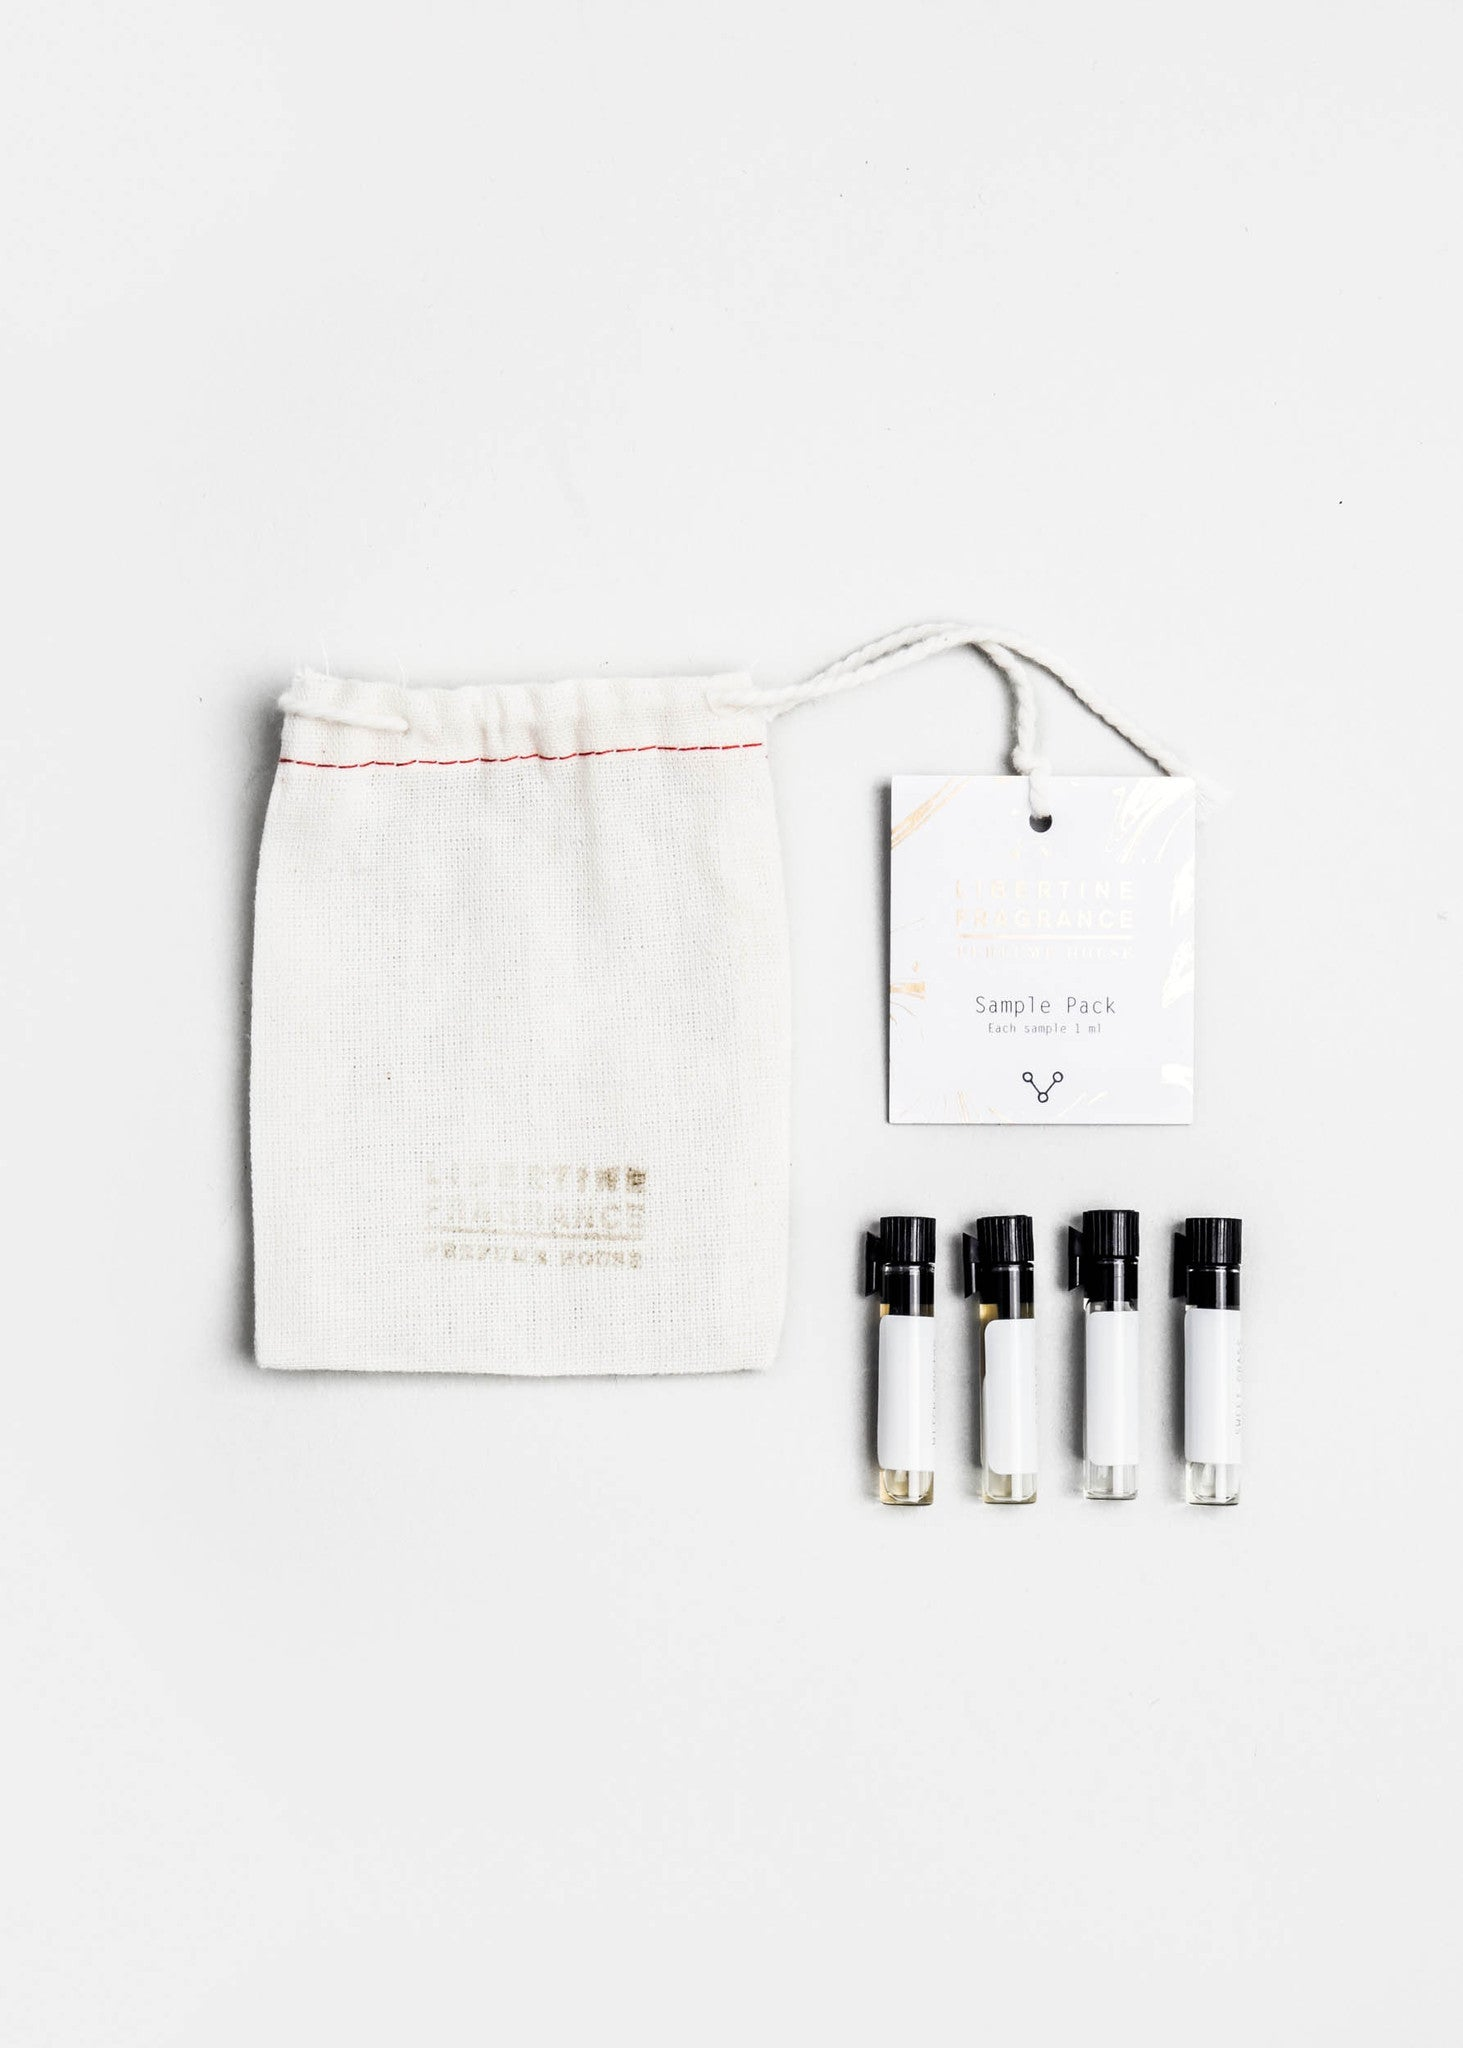 Libertine Fragrance Fragrance Sample Pack — New Classics Studios